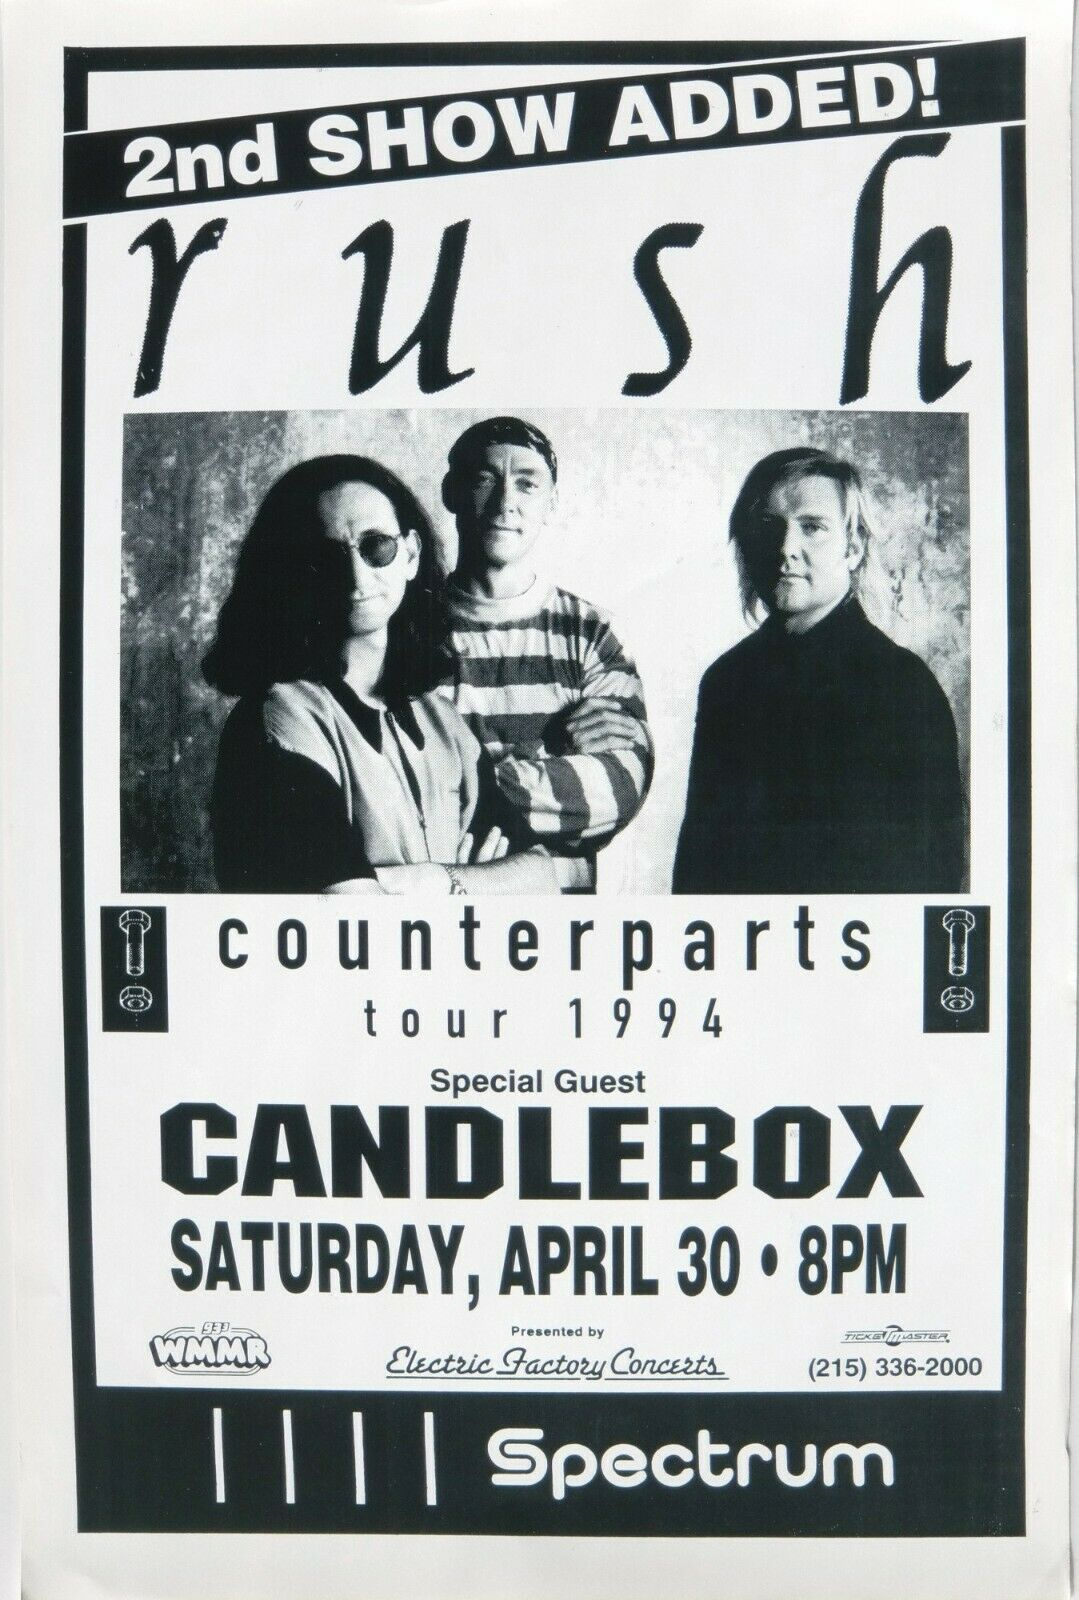 RUSH COUNTERPARTS TOUR 1994 PHILADELPHIA CONCERT POSTER - Live At The Spectrum - $13.99